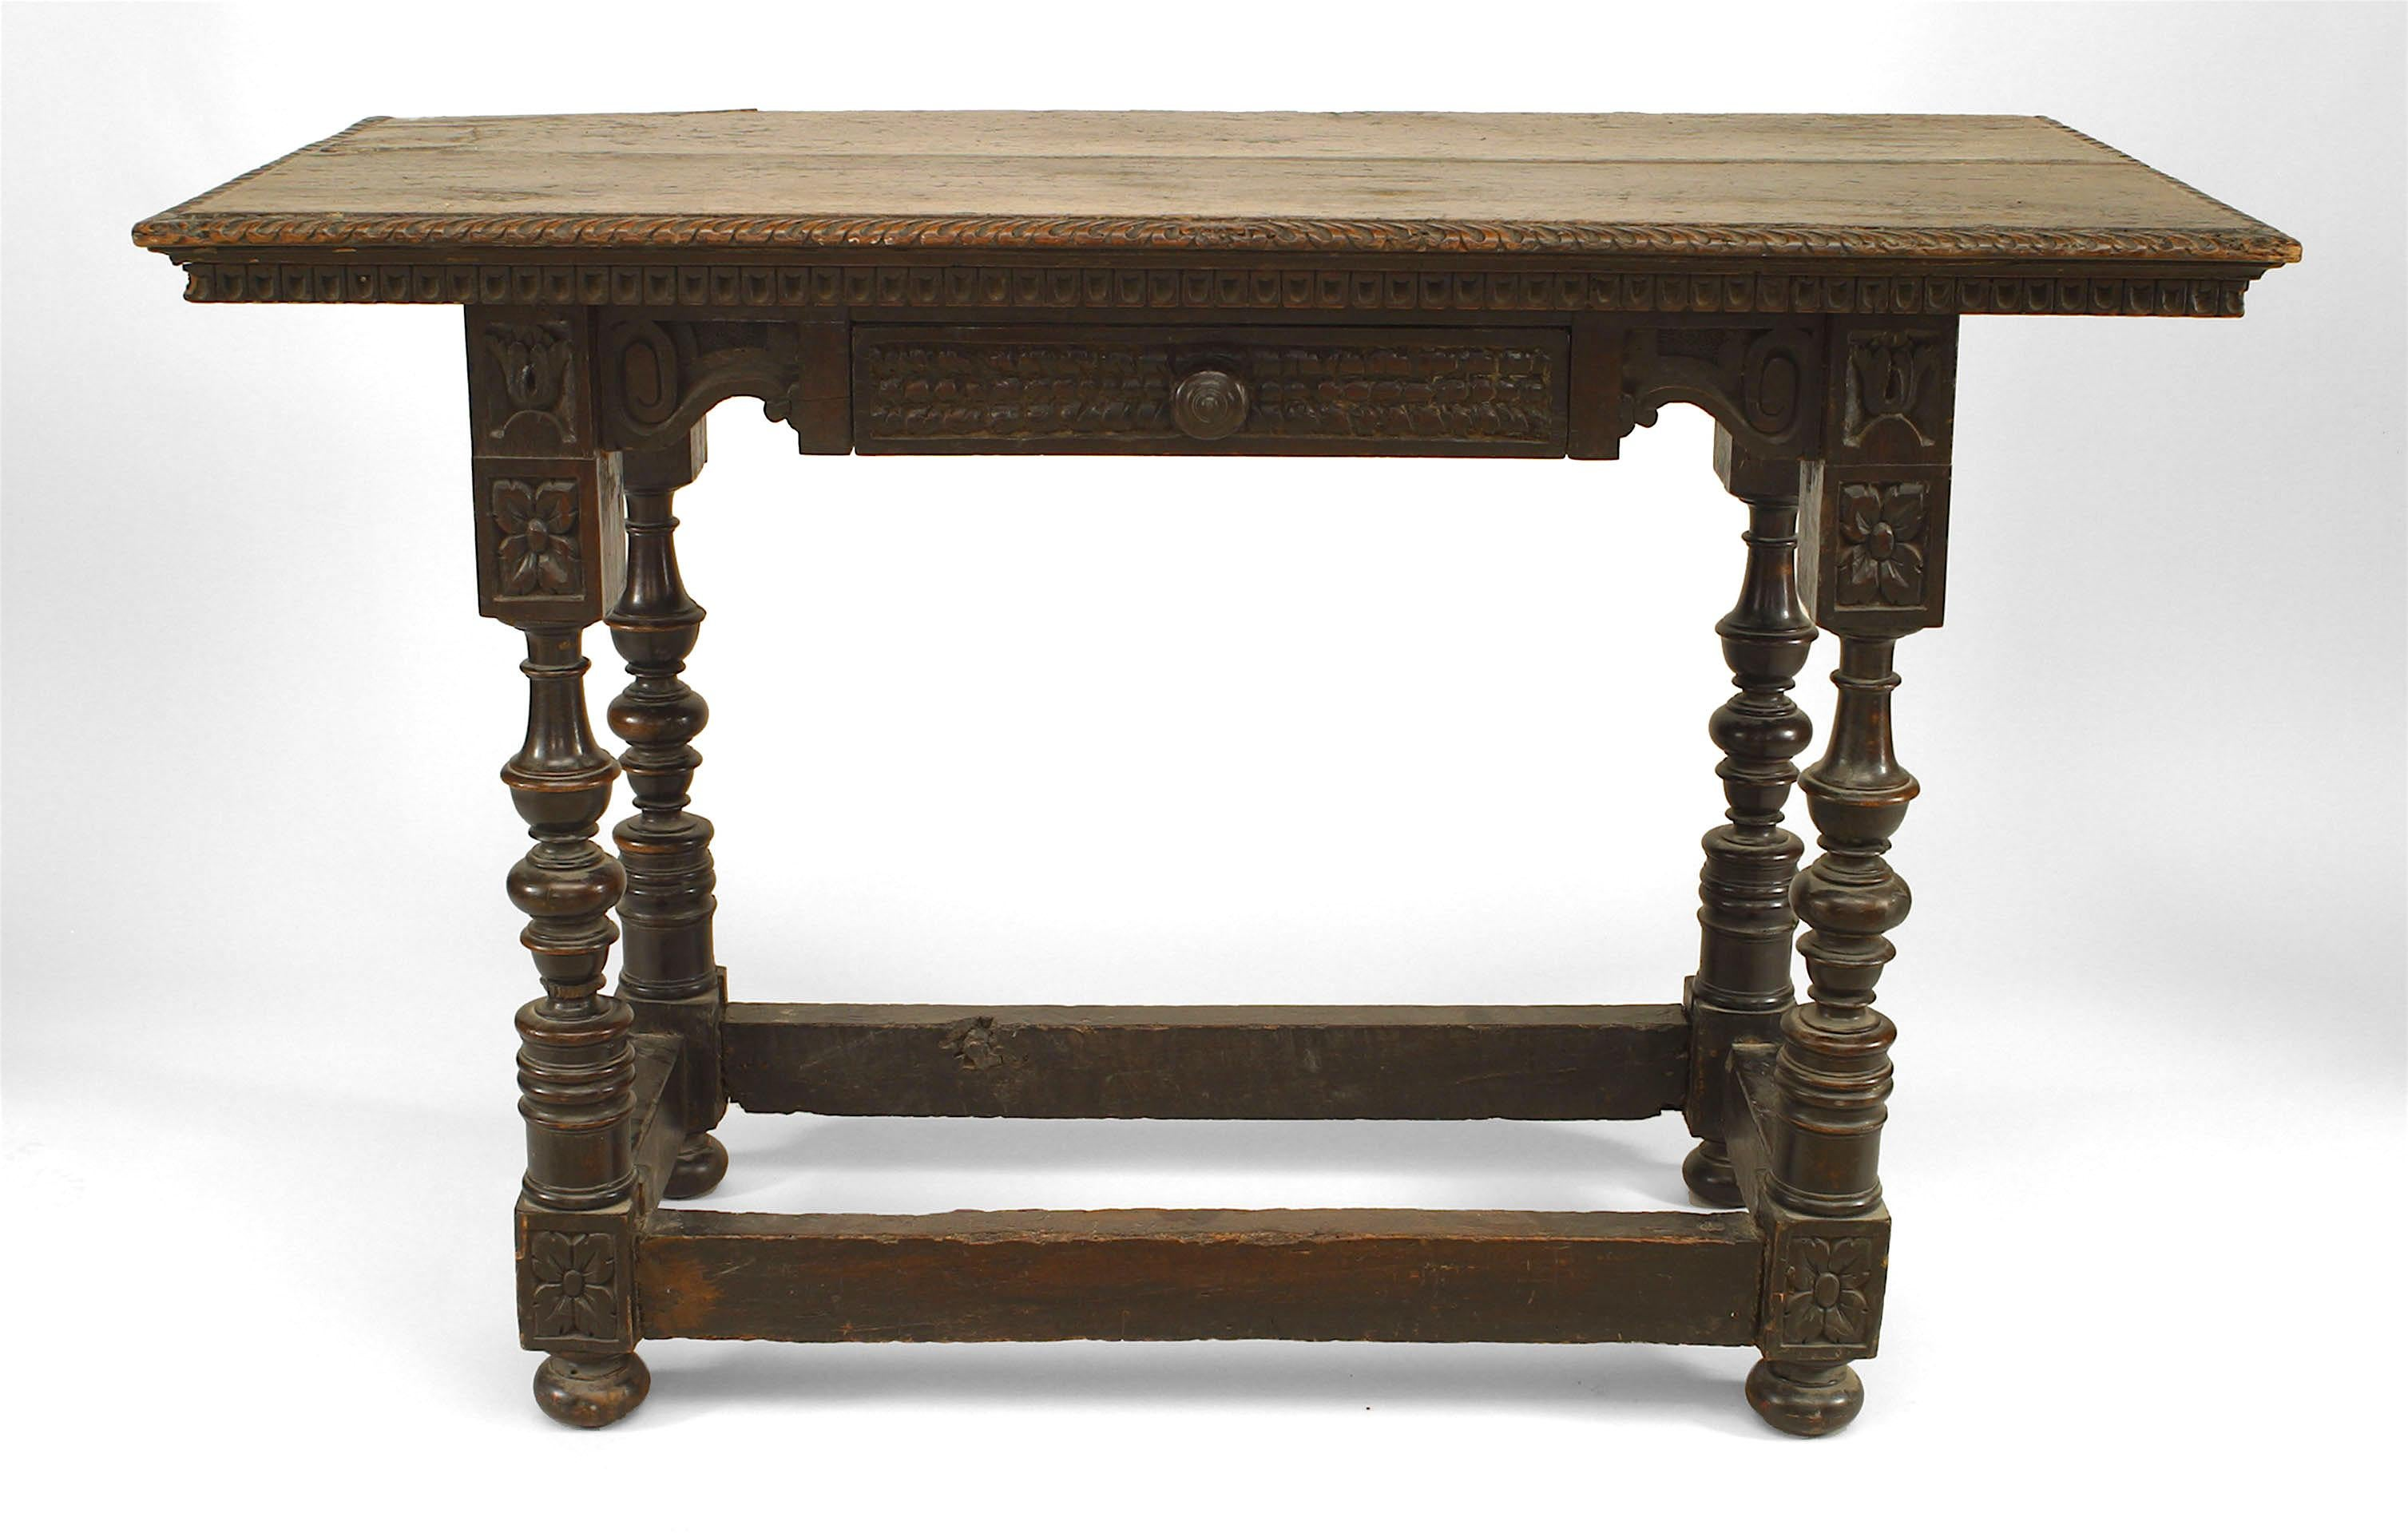 Small 19th C Mahogany Table With Decorative H-stretcher And Turned Detail Furniture